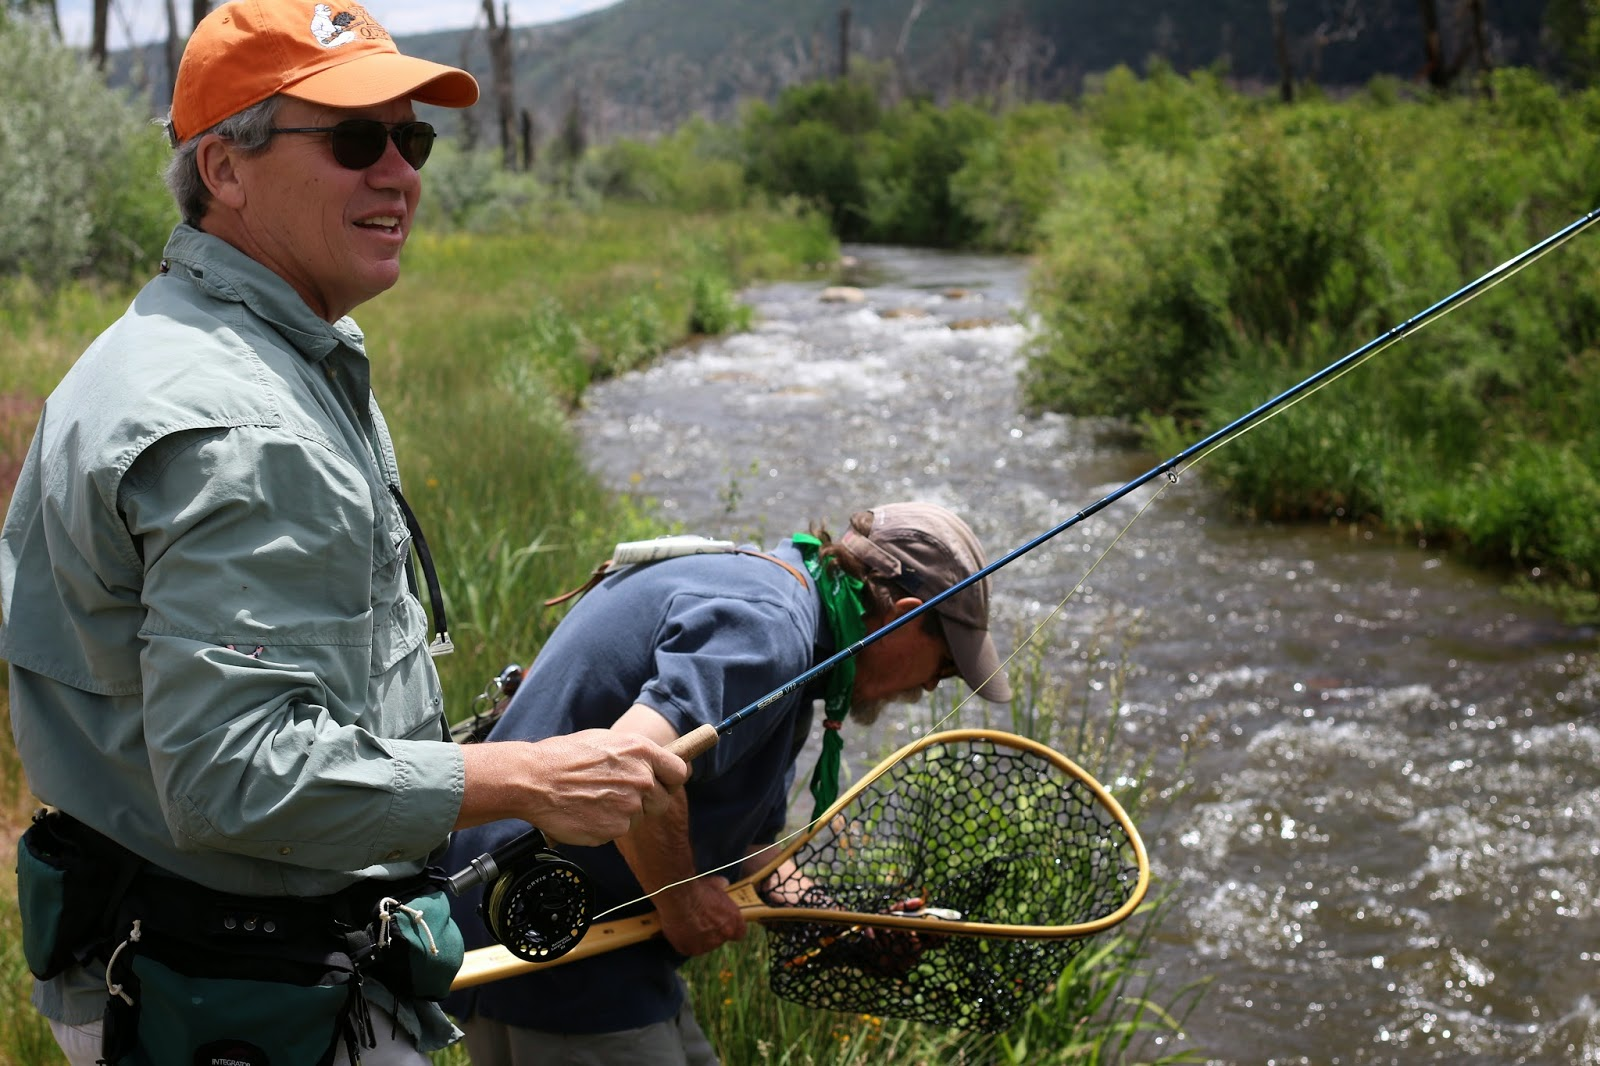 Fly+Fish+for+brown+trout+in+Colorado+with+Jay+Scott+Outdoors+14.JPG